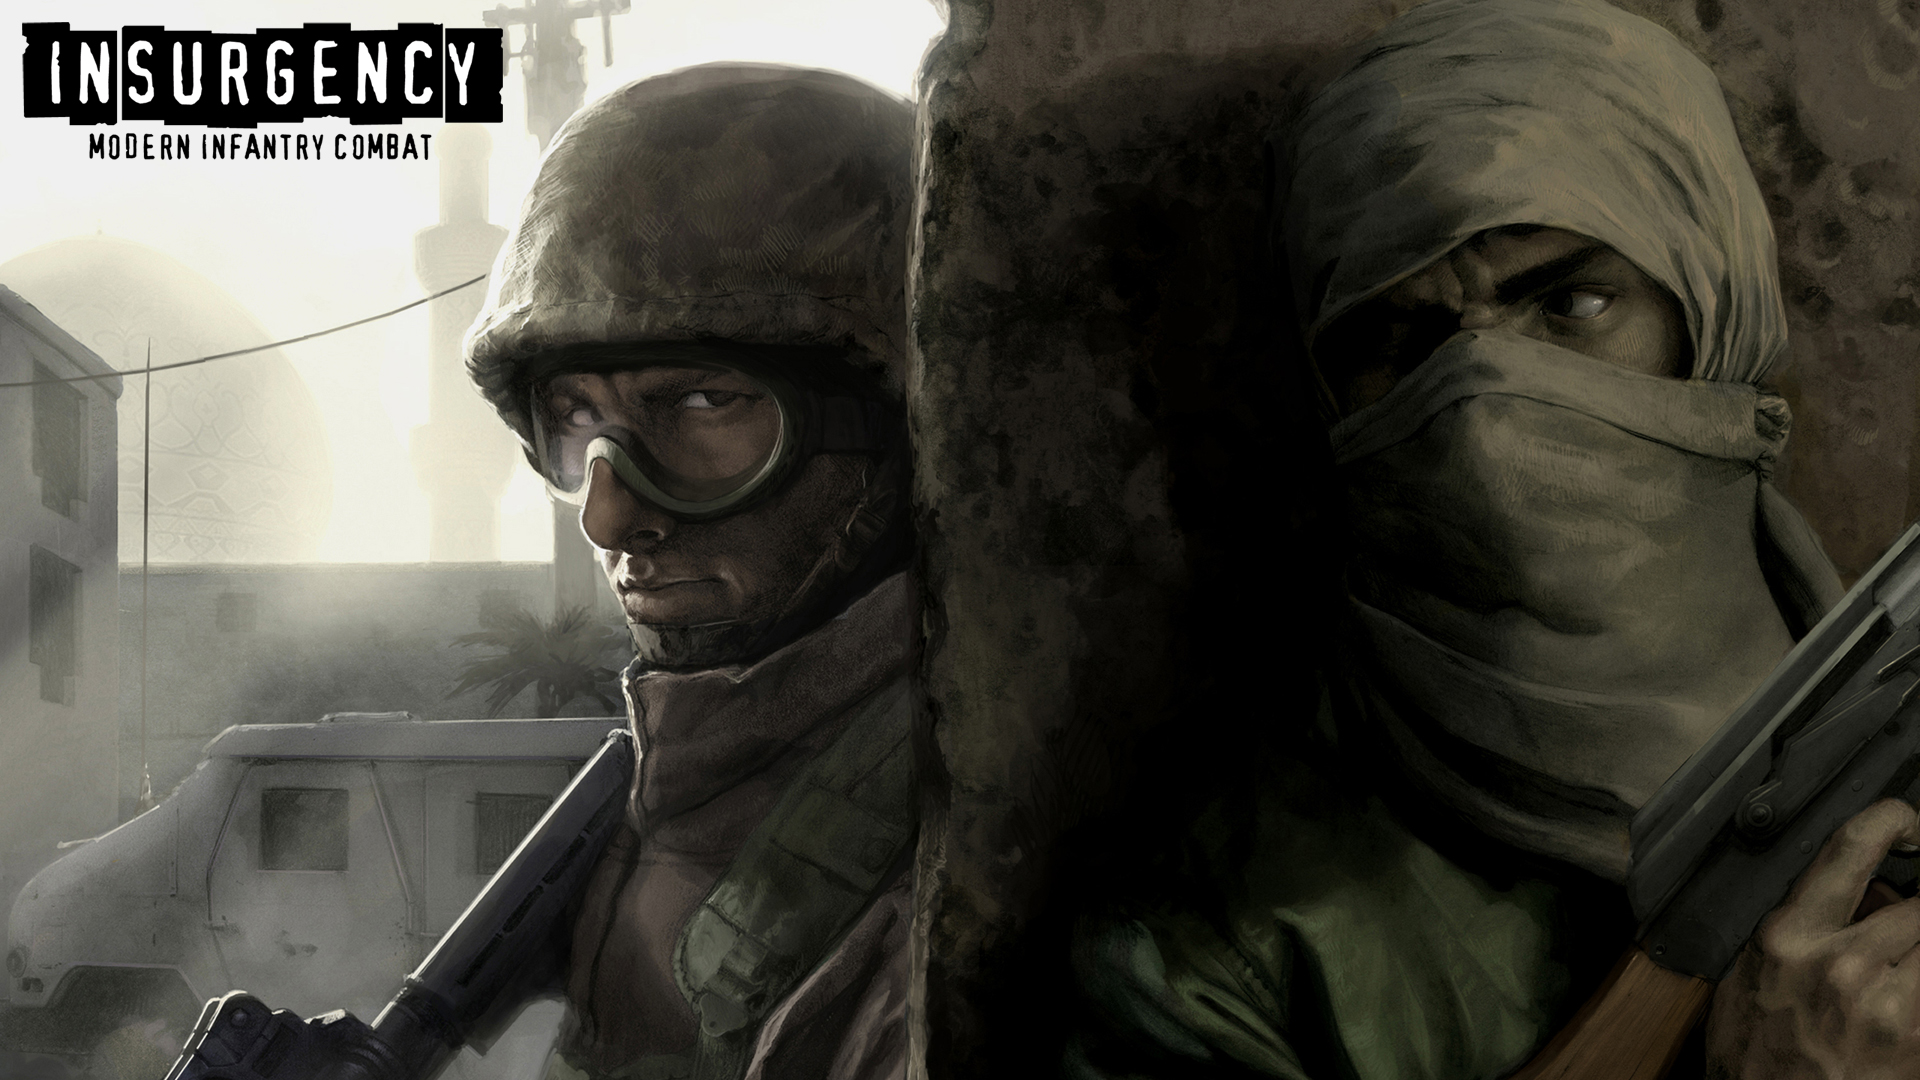 Insurgency Wallpapers